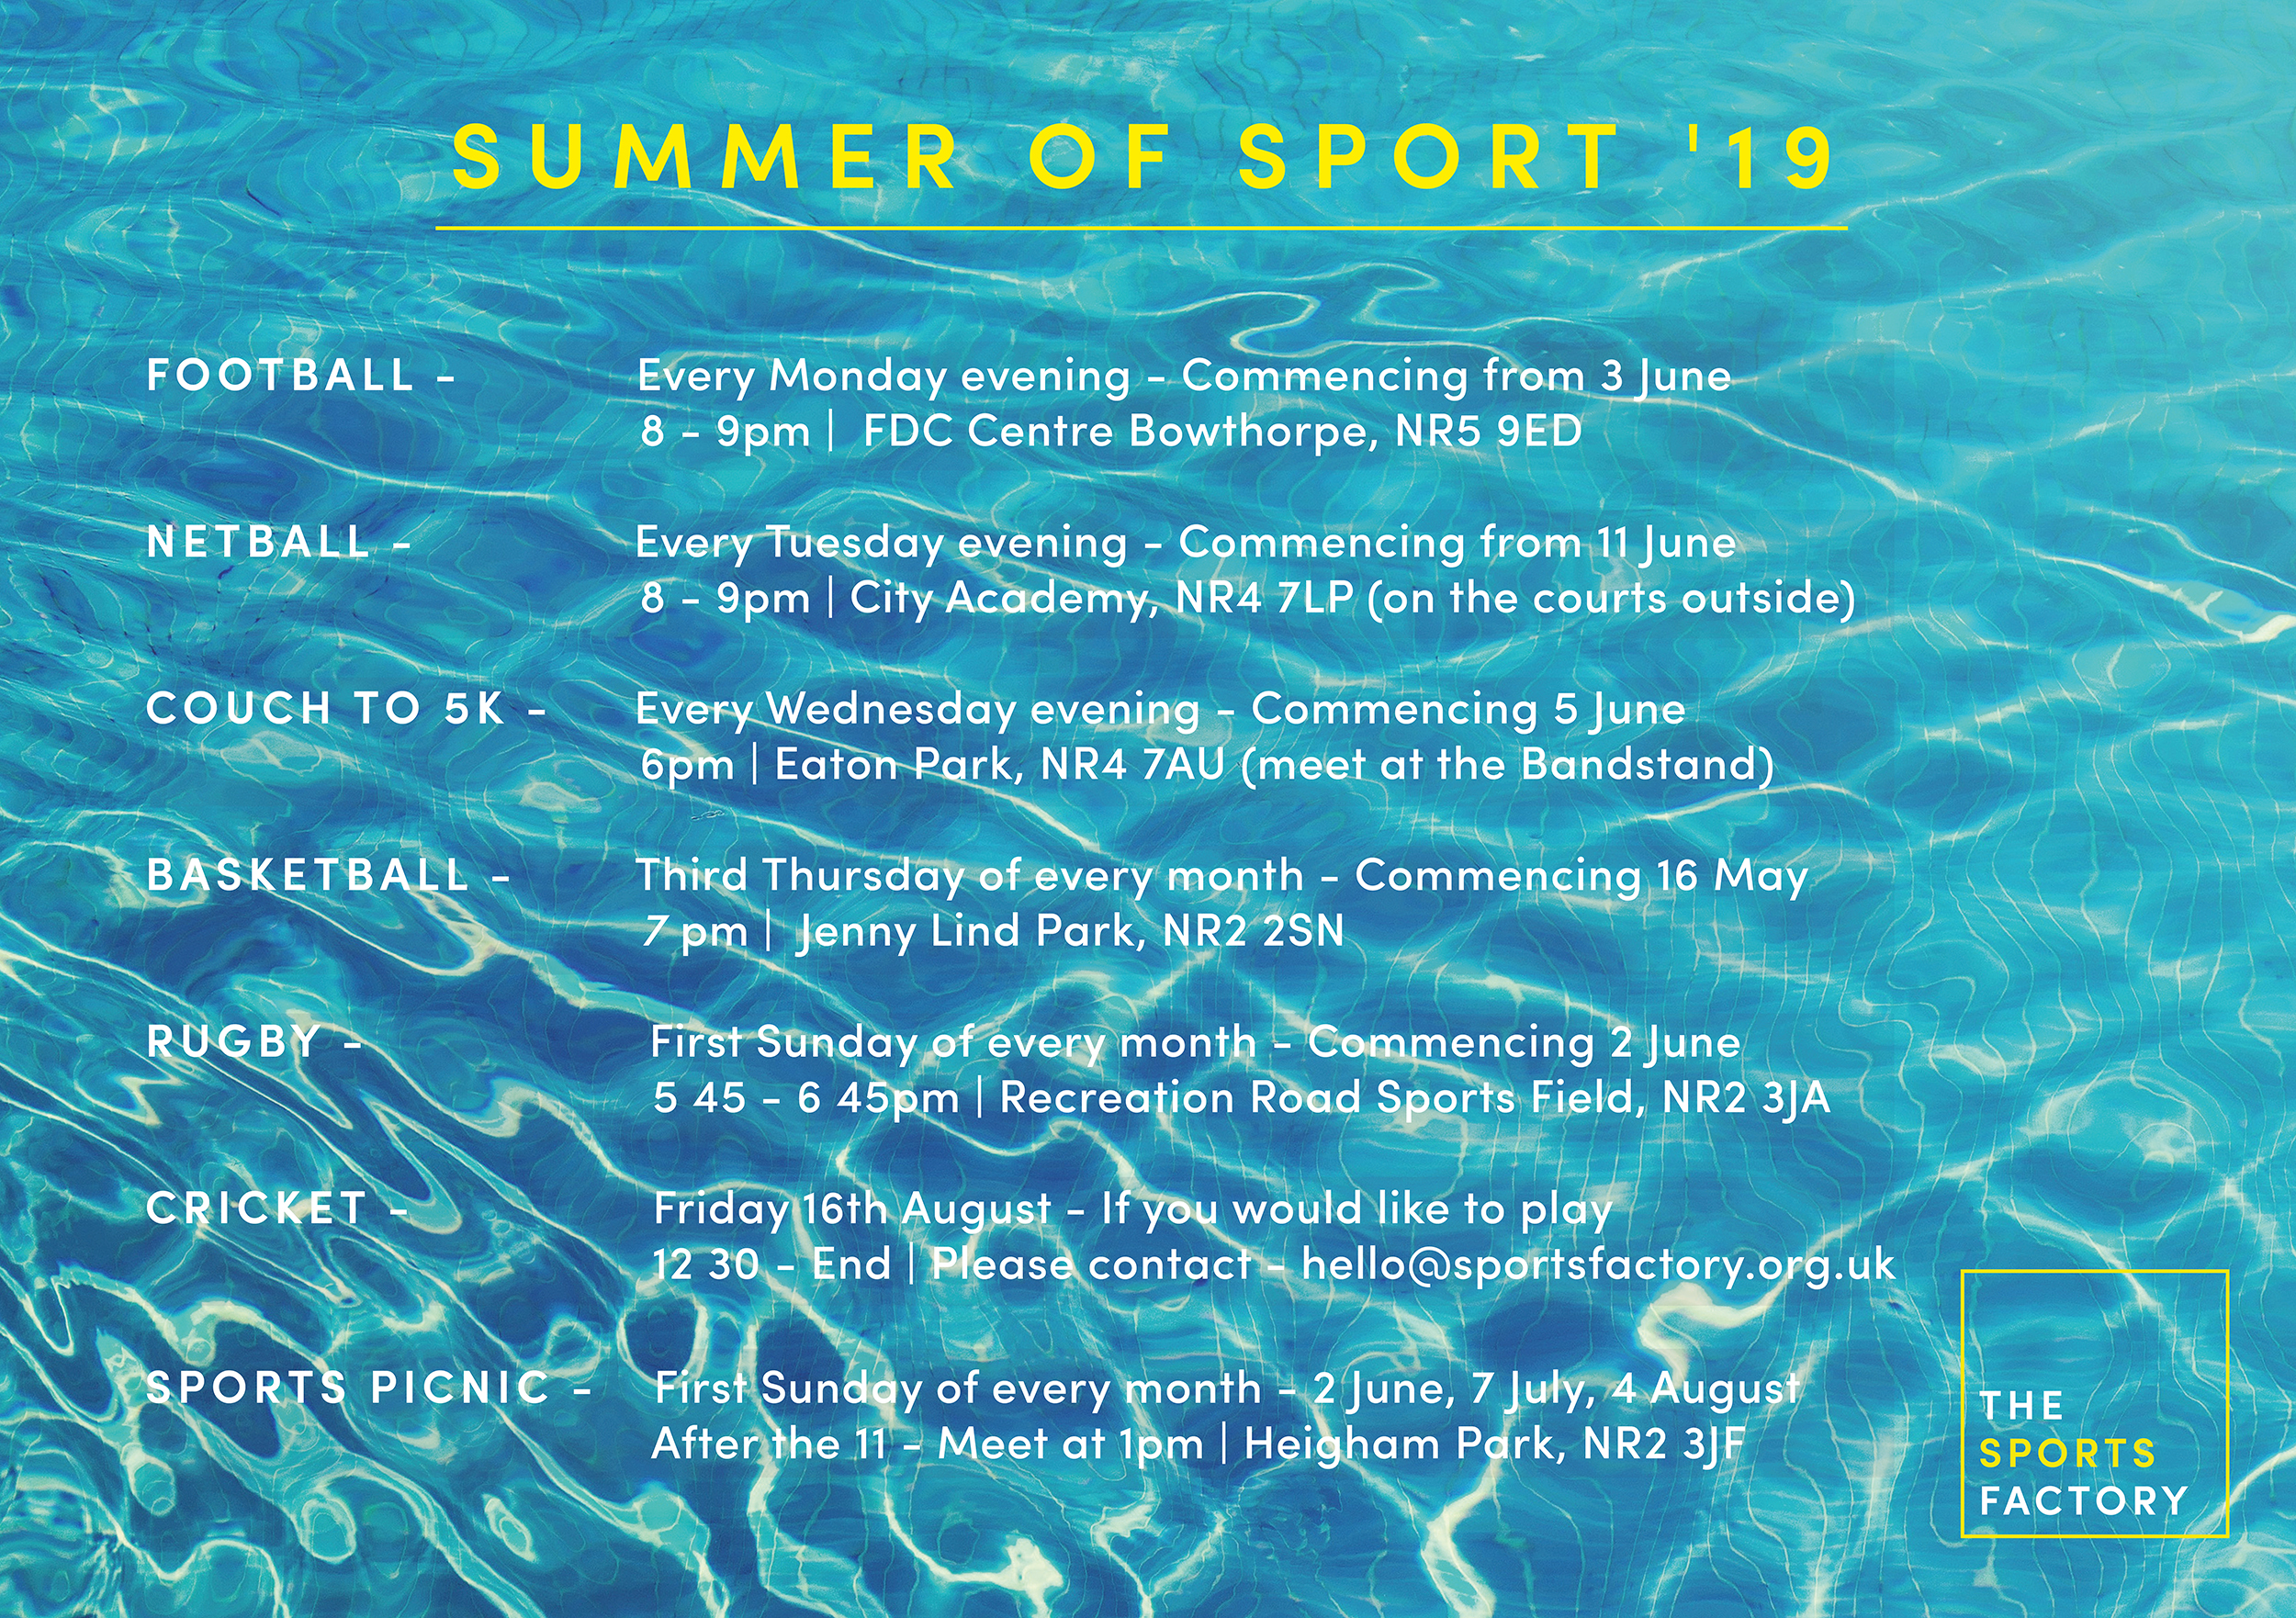 Summer of Sport Flyer copy.jpg